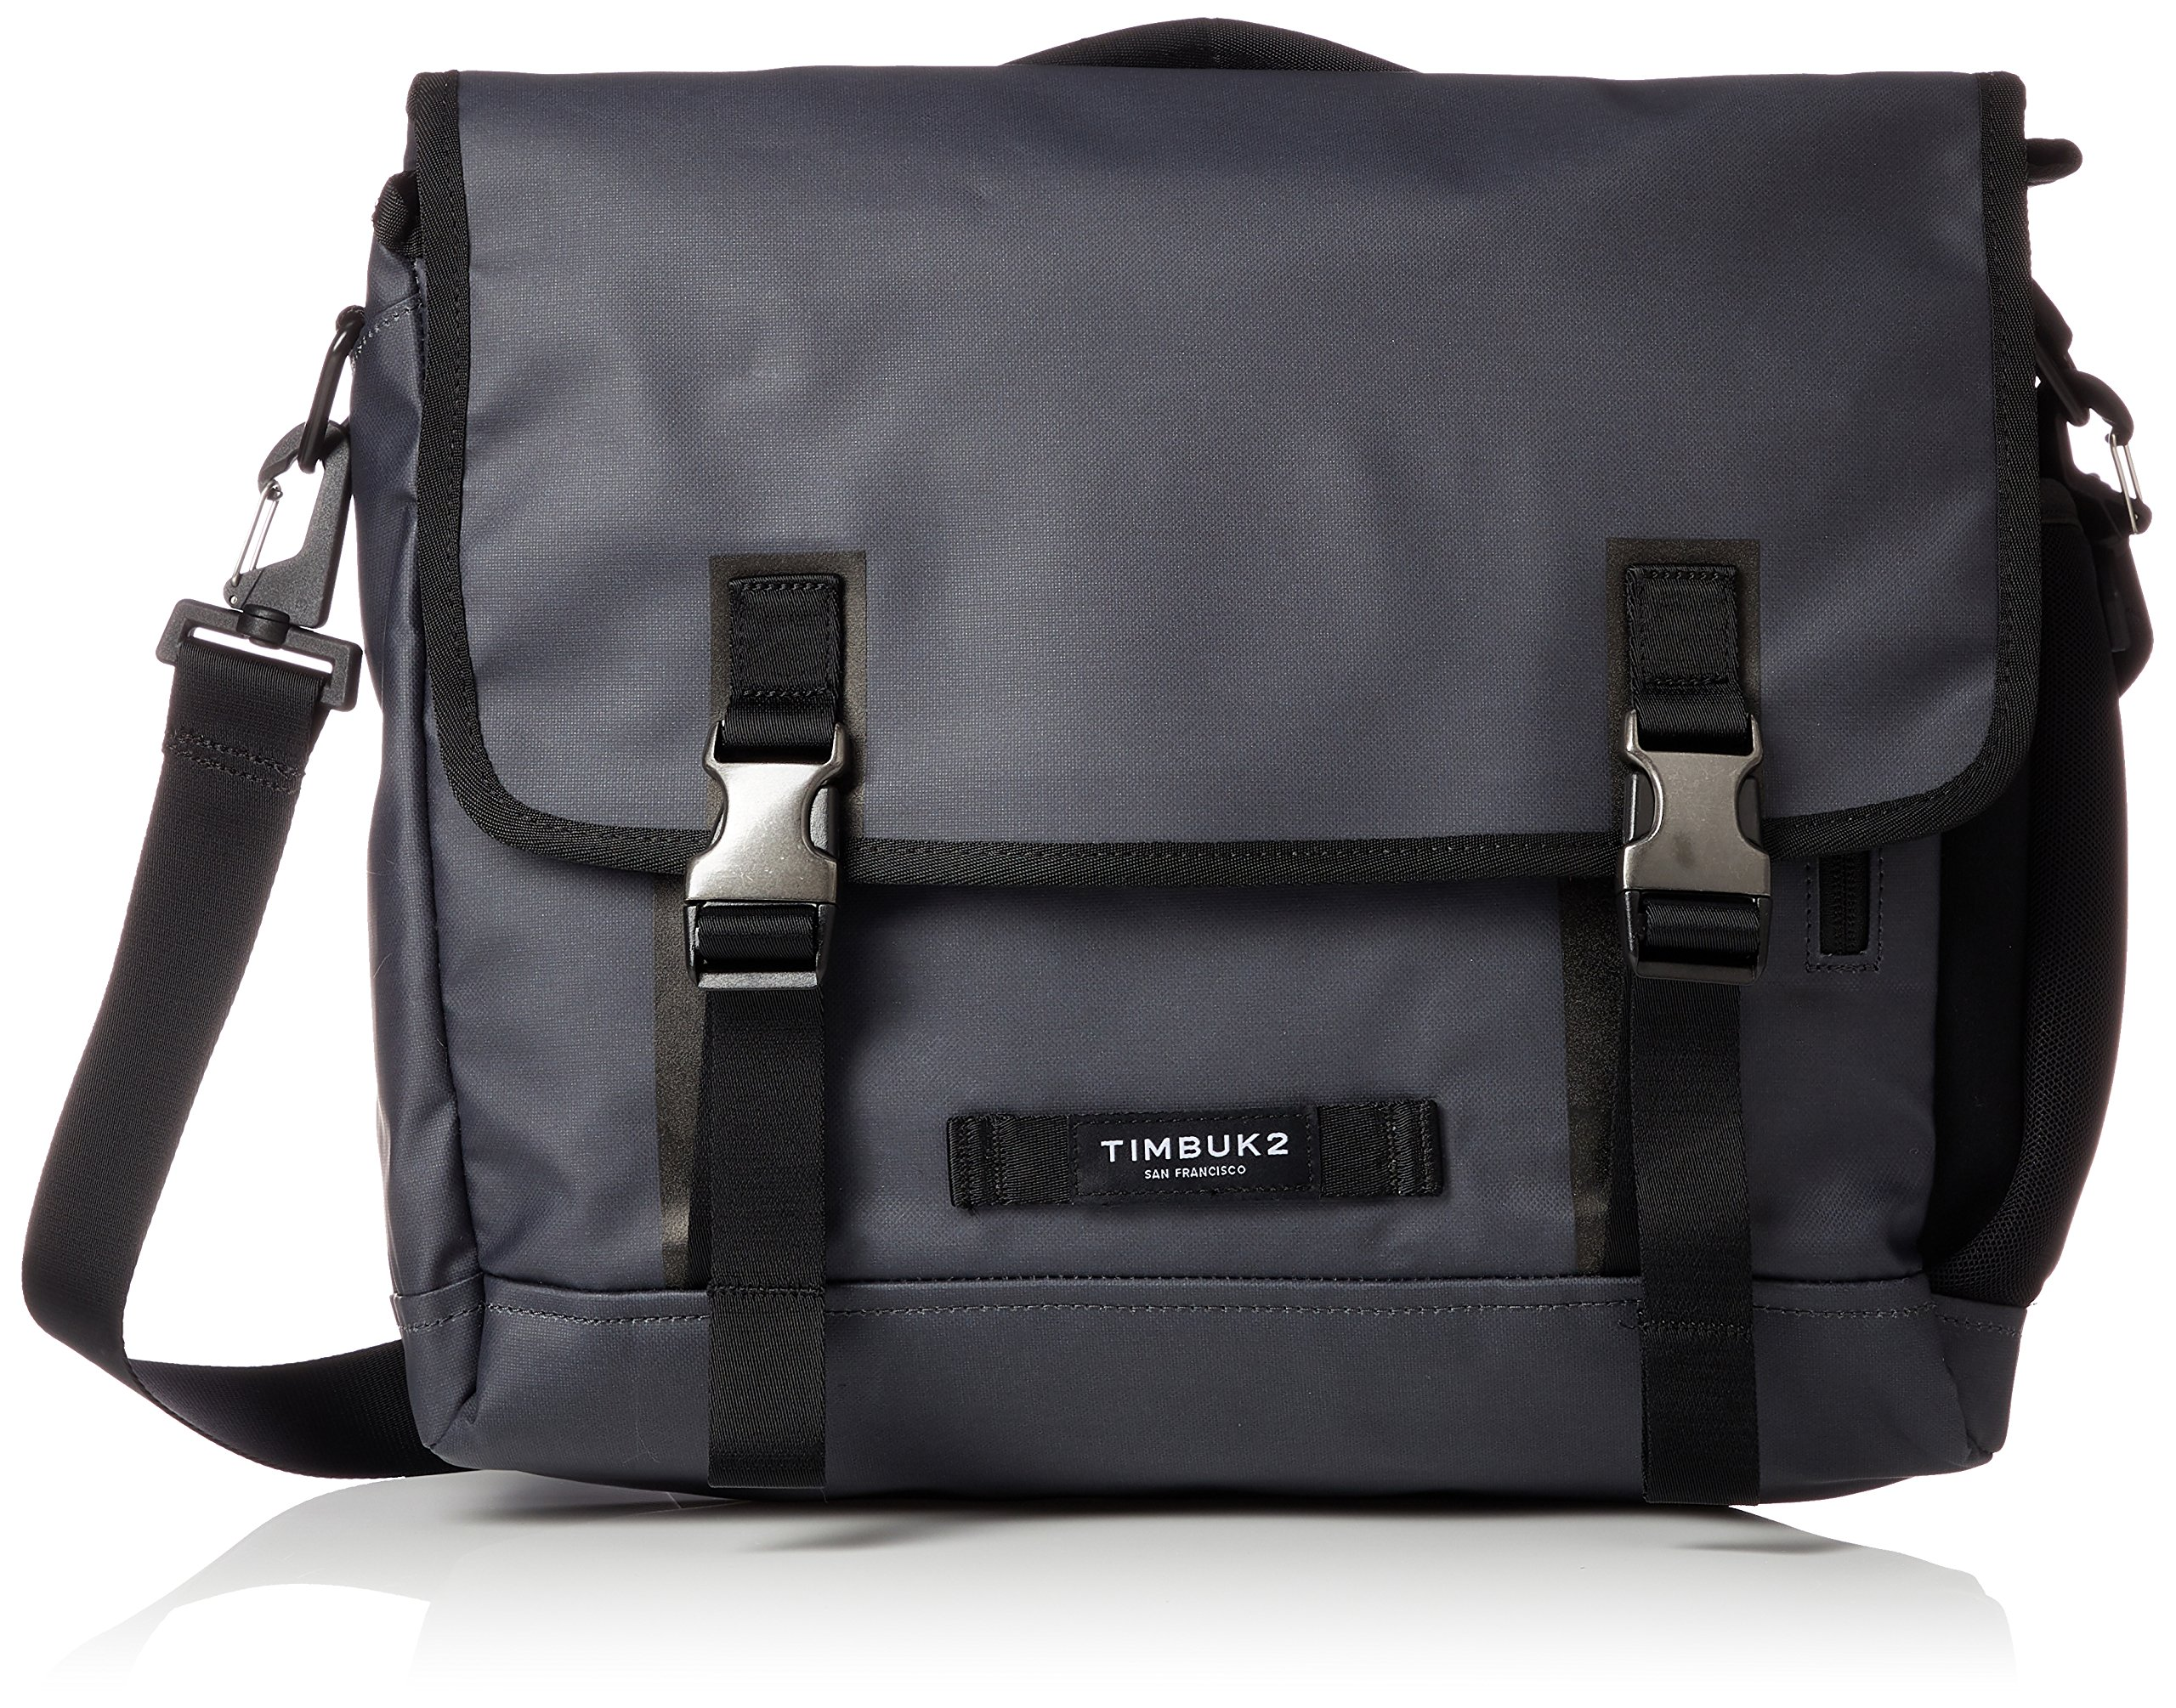 Timbuk2 Transit Collection The Closer Case (Storm, Small) by Timbuk2